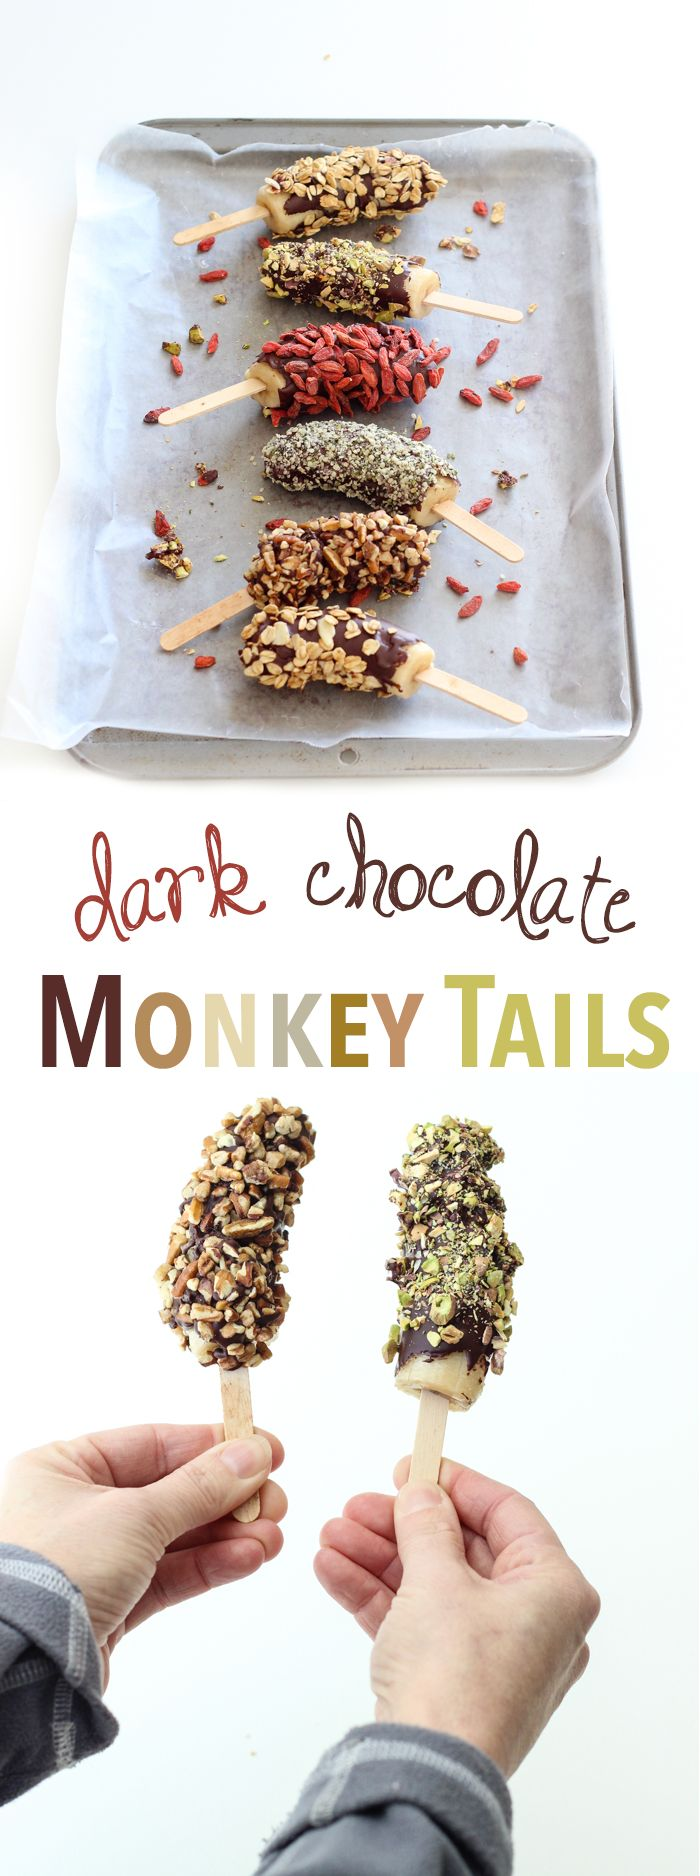 Feel great about indulging in these healthy snacks - frozen bananas dipped in dark chocolate with your choice of toppings, from hemp seeds to granola to walnuts to goji berries!